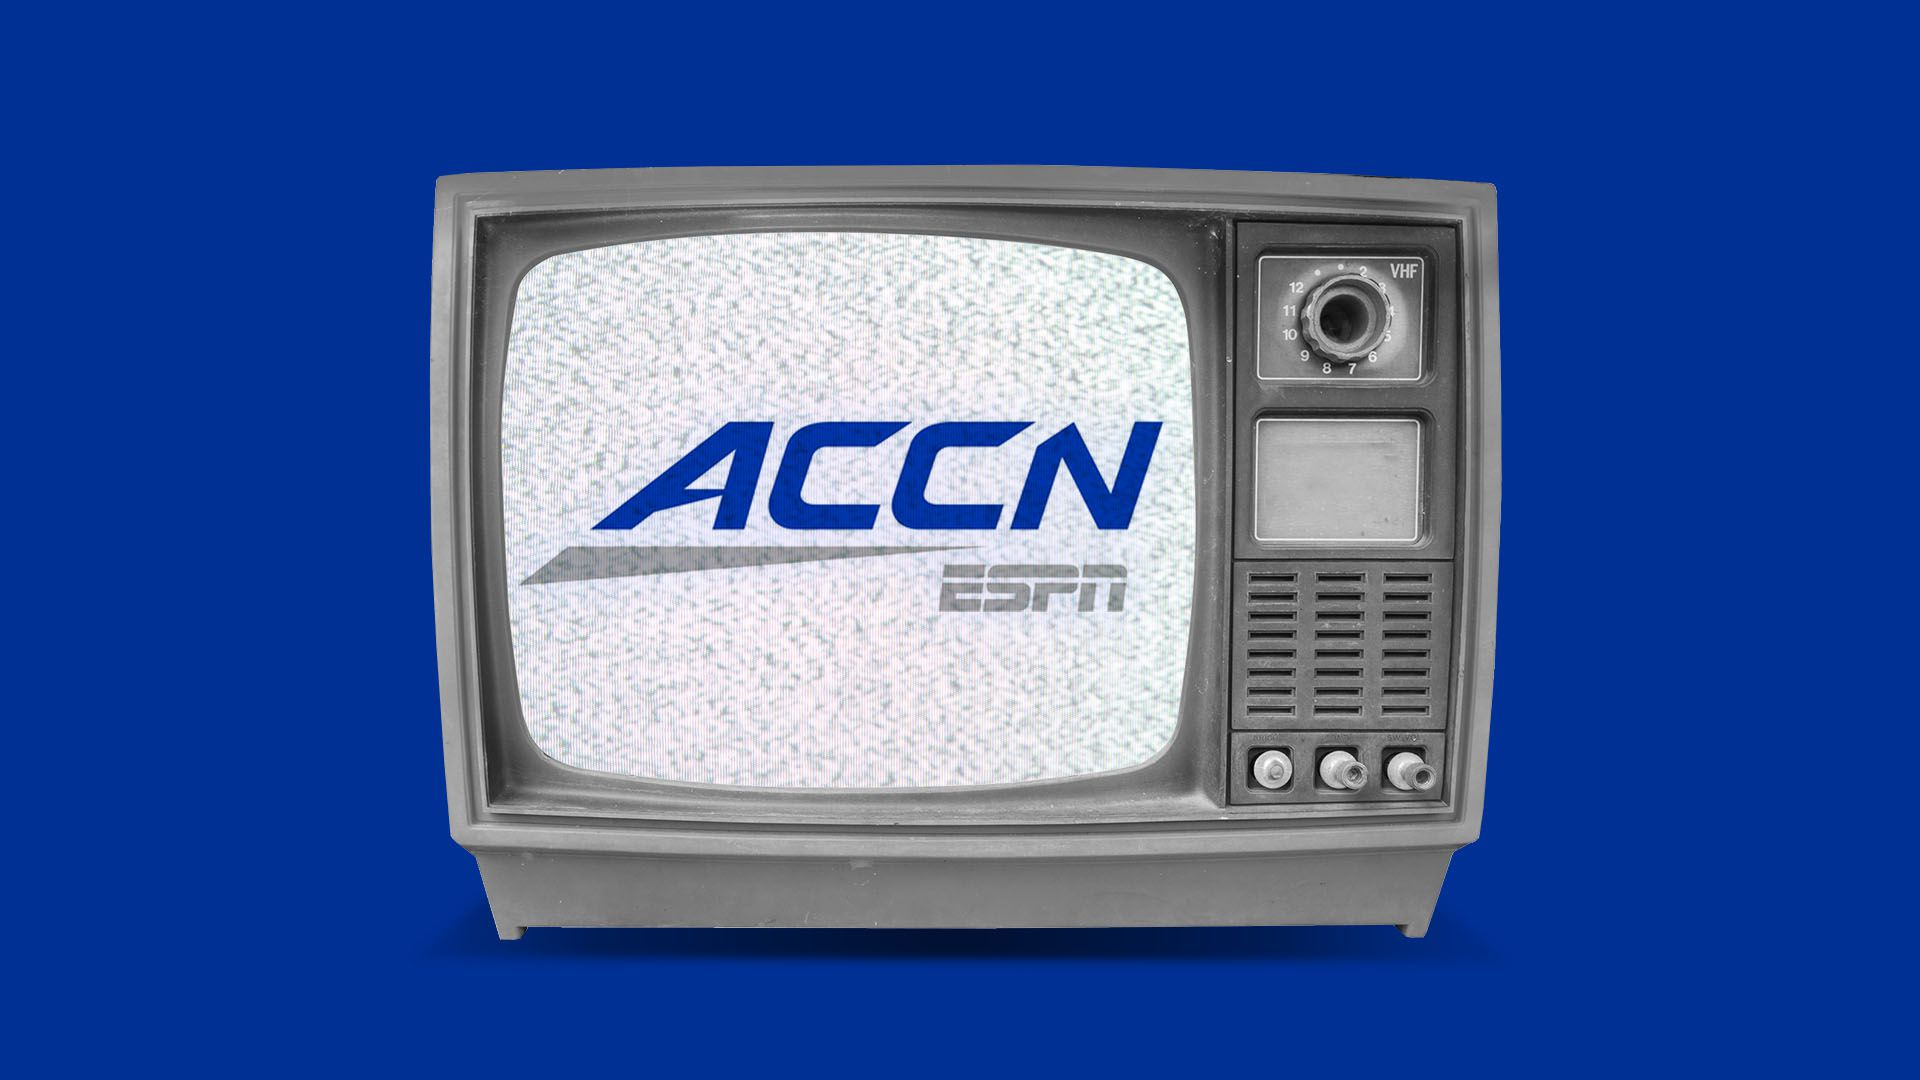 Illustration of the ACCN logo on a television set